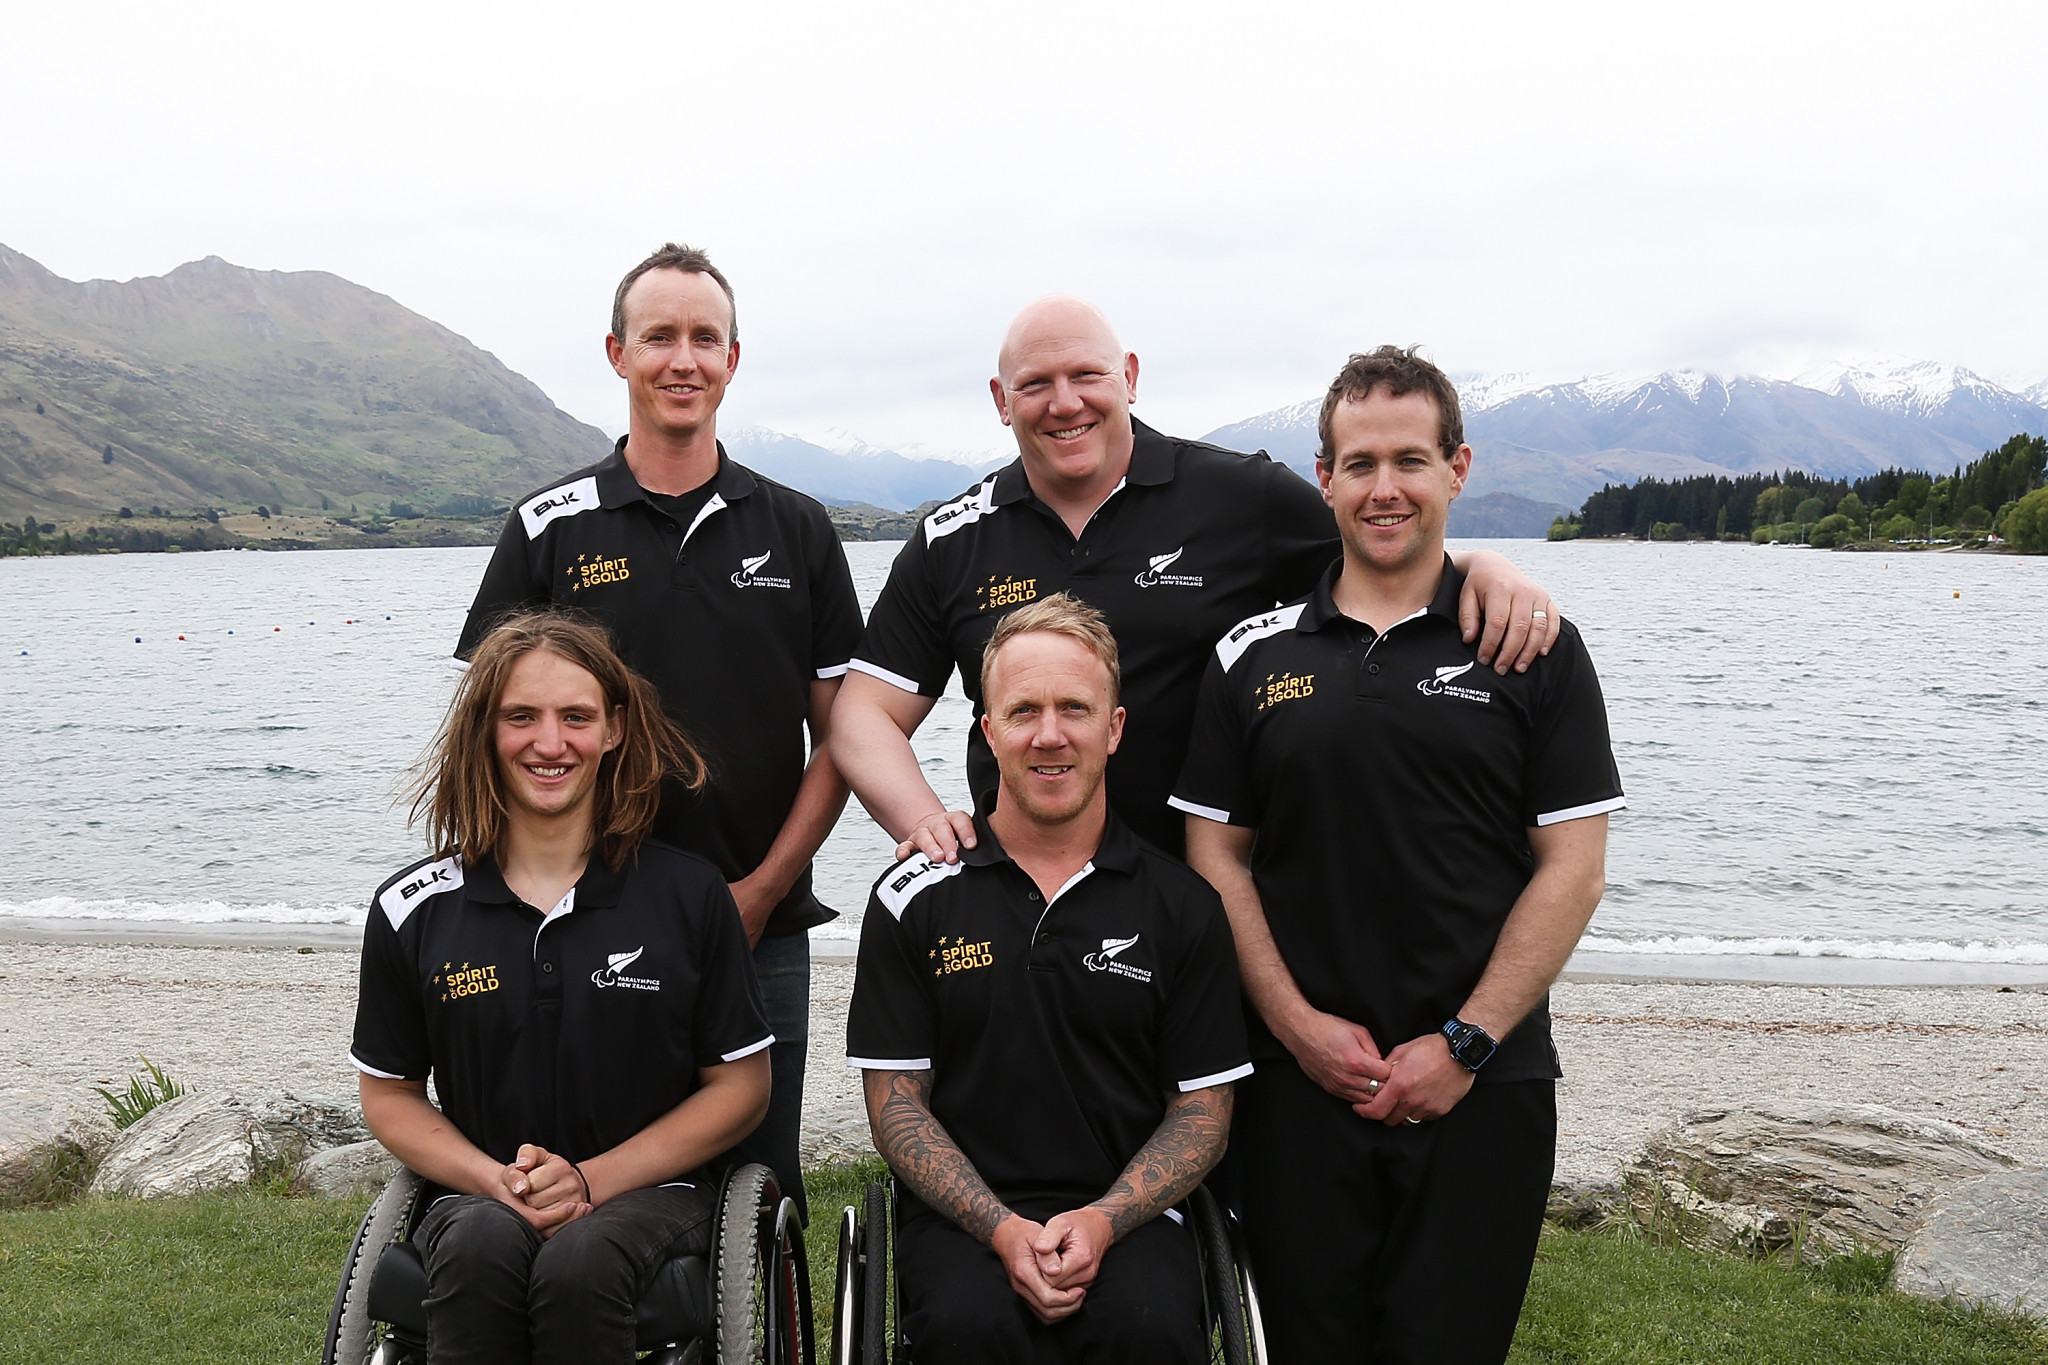 New Zealand Paralympic team at Pyeongchang 2018 to receive letters and video message from Disability Minister